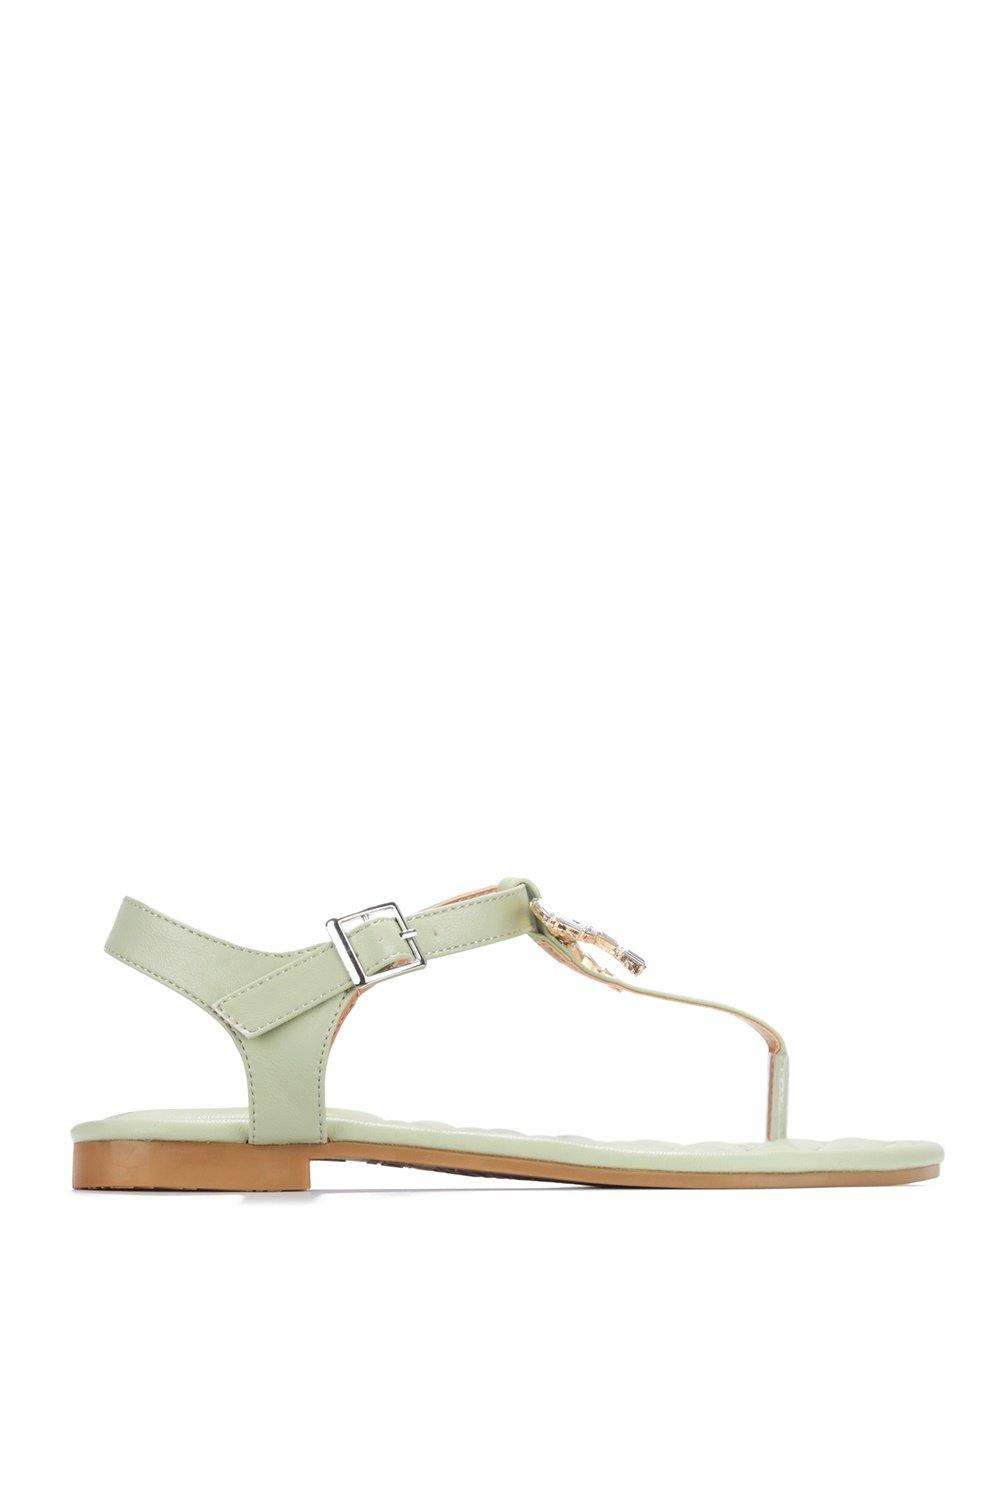 JOYA ENJOY YOURSELF SANDALS-SAGE